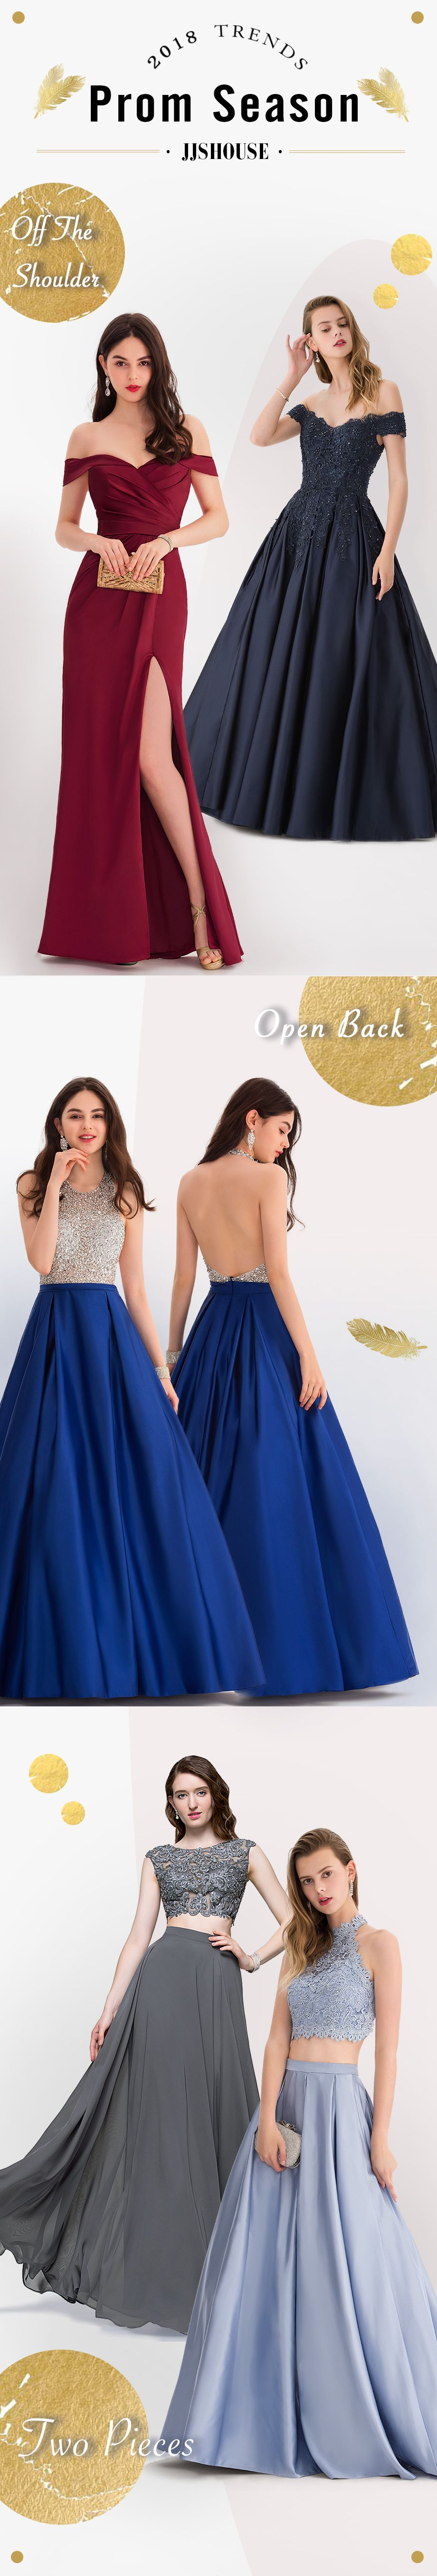 Prom Season Is Here Which Style Do You Like We Ve Got Off The Shoulder Open Back Two Piece Sequins And So On Find Dresses Prom Dresses Stylish Prom Dress [ 5427 x 920 Pixel ]